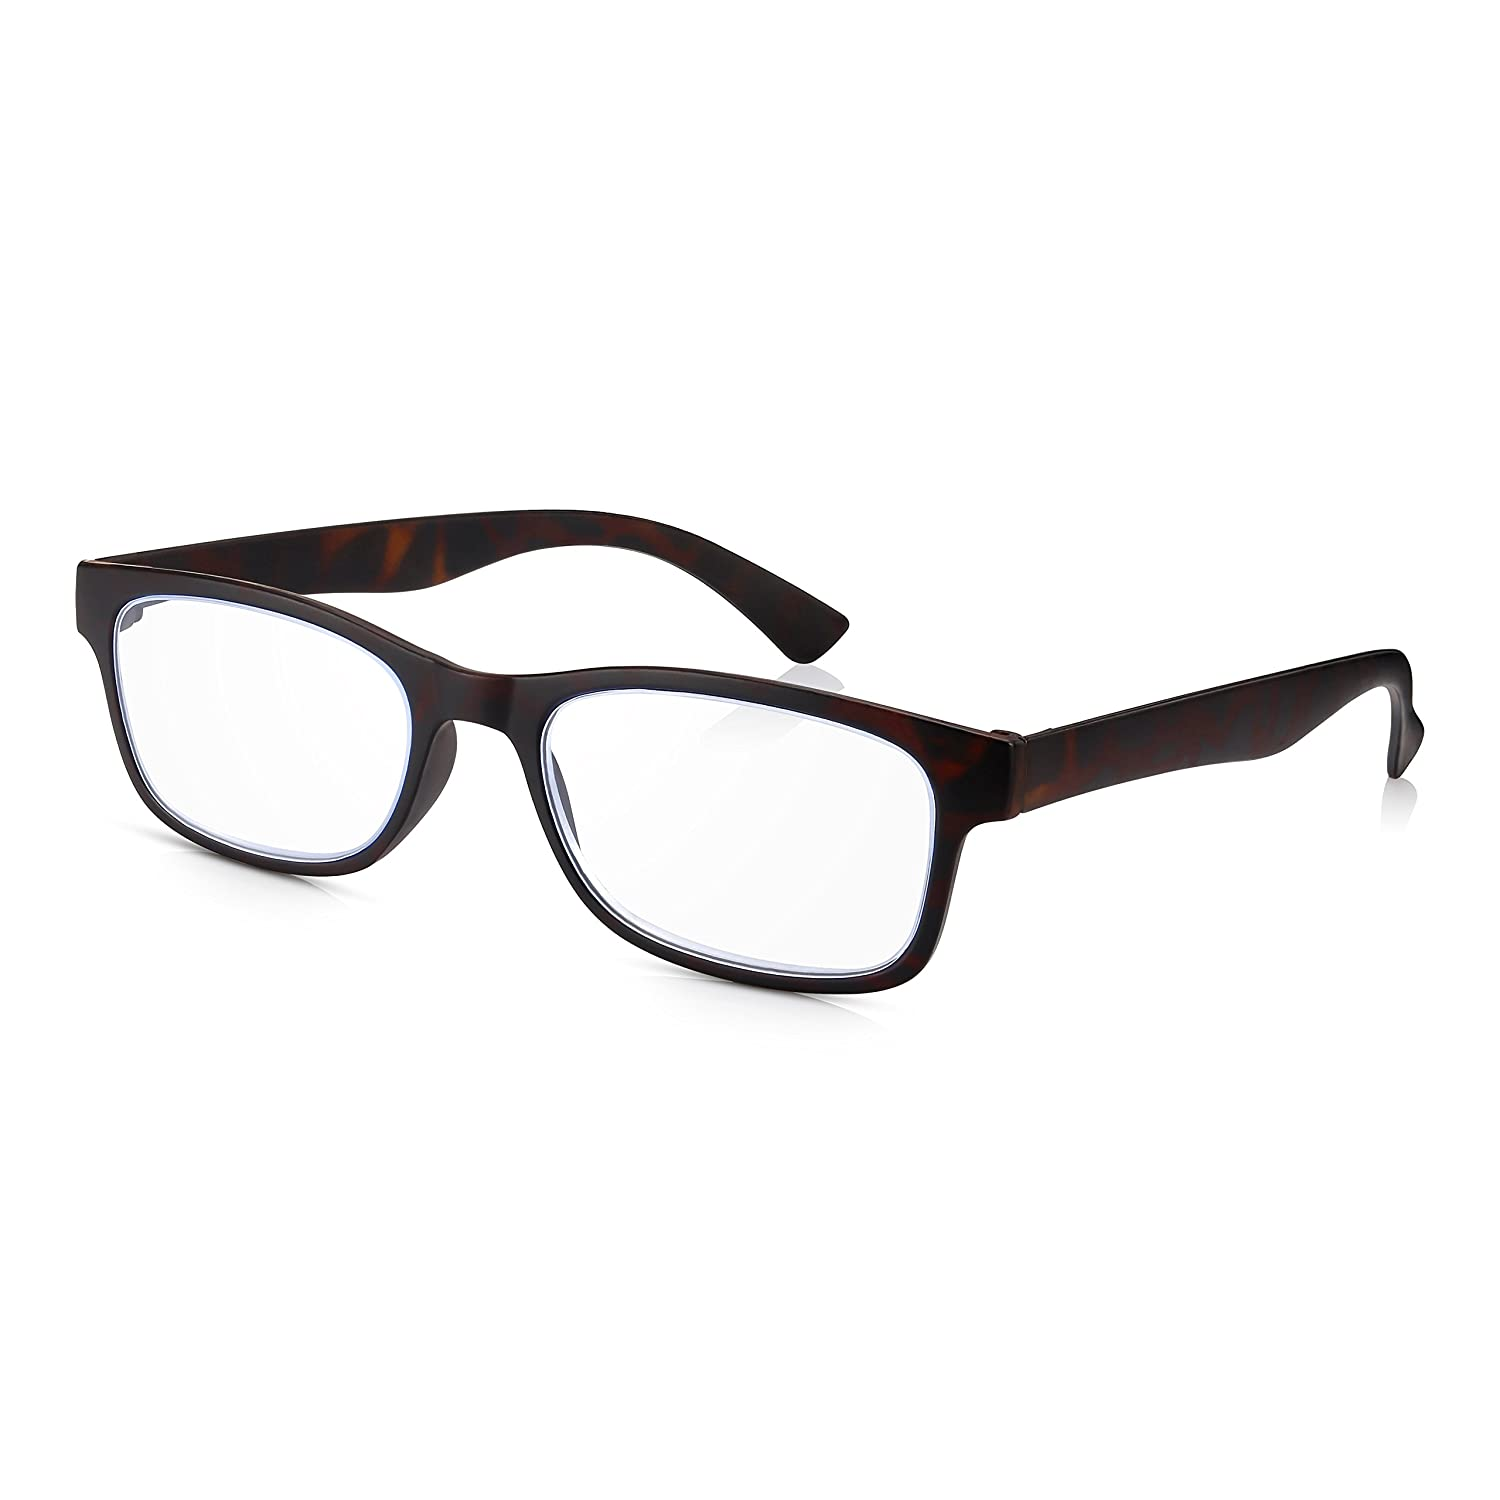 Unbreakable Retro Italian Style Easy Readers in Fashionable Brown Tortoiseshell Thin Read Optics 2 Pack Ladies//Gents Reading Glasses Light and Tough Polycarbonate 1.5 Optical Quality Lenses